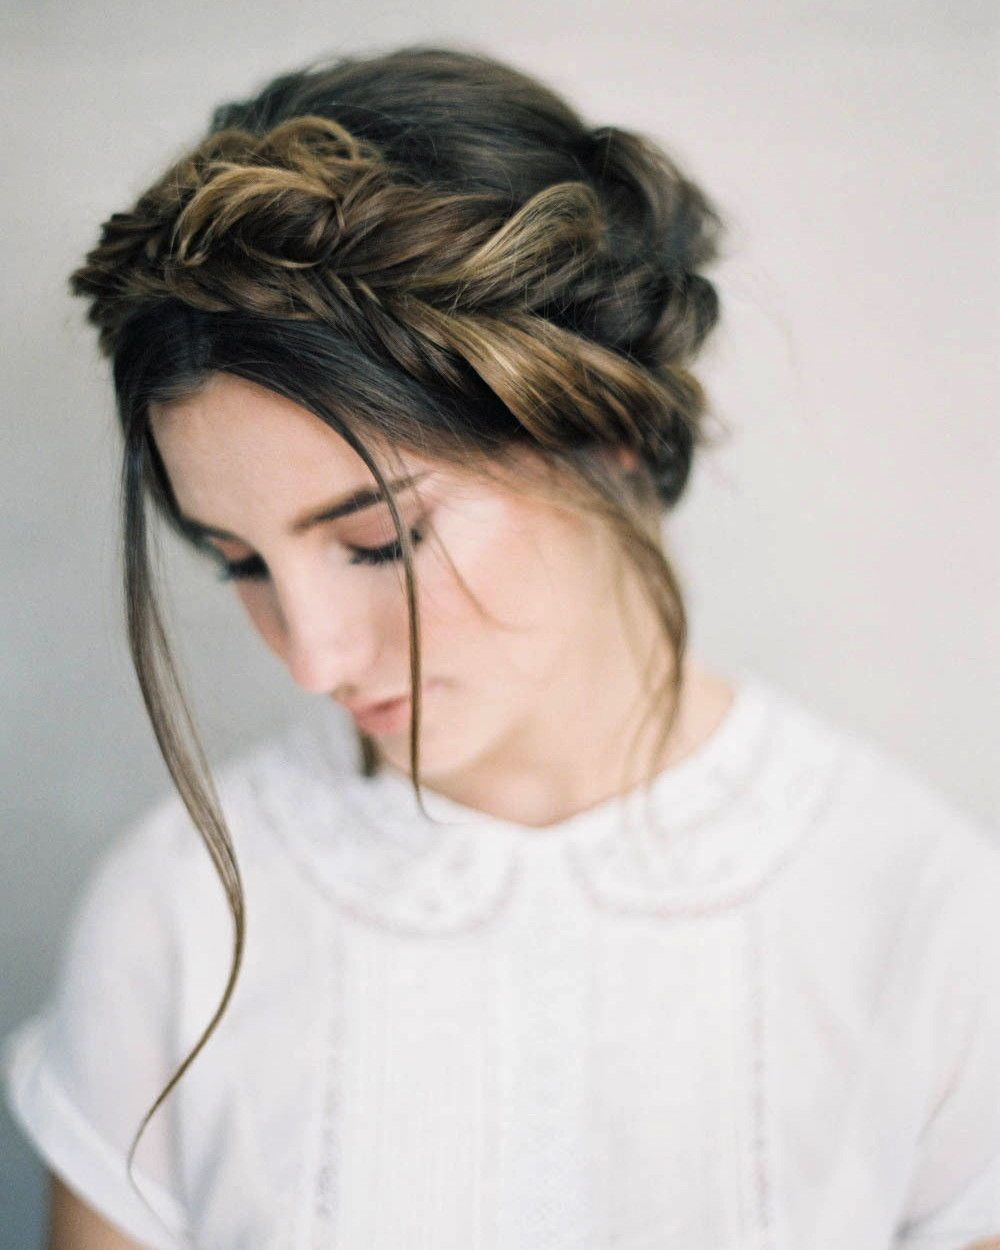 """Modern Wedding Hairstyles for the Cool, Contemporary Bride <a class=""""pintag"""" href=""""/explore/WeddingHairstyles/"""" title=""""#WeddingHairstyles explore Pinterest"""">#WeddingHairstyles</a> <a class=""""pintag"""" href=""""/explore/WeddingHair/"""" title=""""#WeddingHair explore Pinterest"""">#WeddingHair</a> <a class=""""pintag"""" href=""""/explore/WeddingInspiration/"""" title=""""#WeddingInspiration explore Pinterest"""">#WeddingInspiration</a> <a class=""""pintag"""" href=""""/explore/ModernWedding/"""" title=""""#ModernWedding explore Pinterest"""">#ModernWedding</a>   Martha Stewart Weddings – Modern Wedding Hairstyles for the Cool, Contemporary Bride<p><a href=""""http://www.homeinteriordesign.org/2018/02/short-guide-to-interior-decoration.html"""">Short guide to interior decoration</a></p>"""